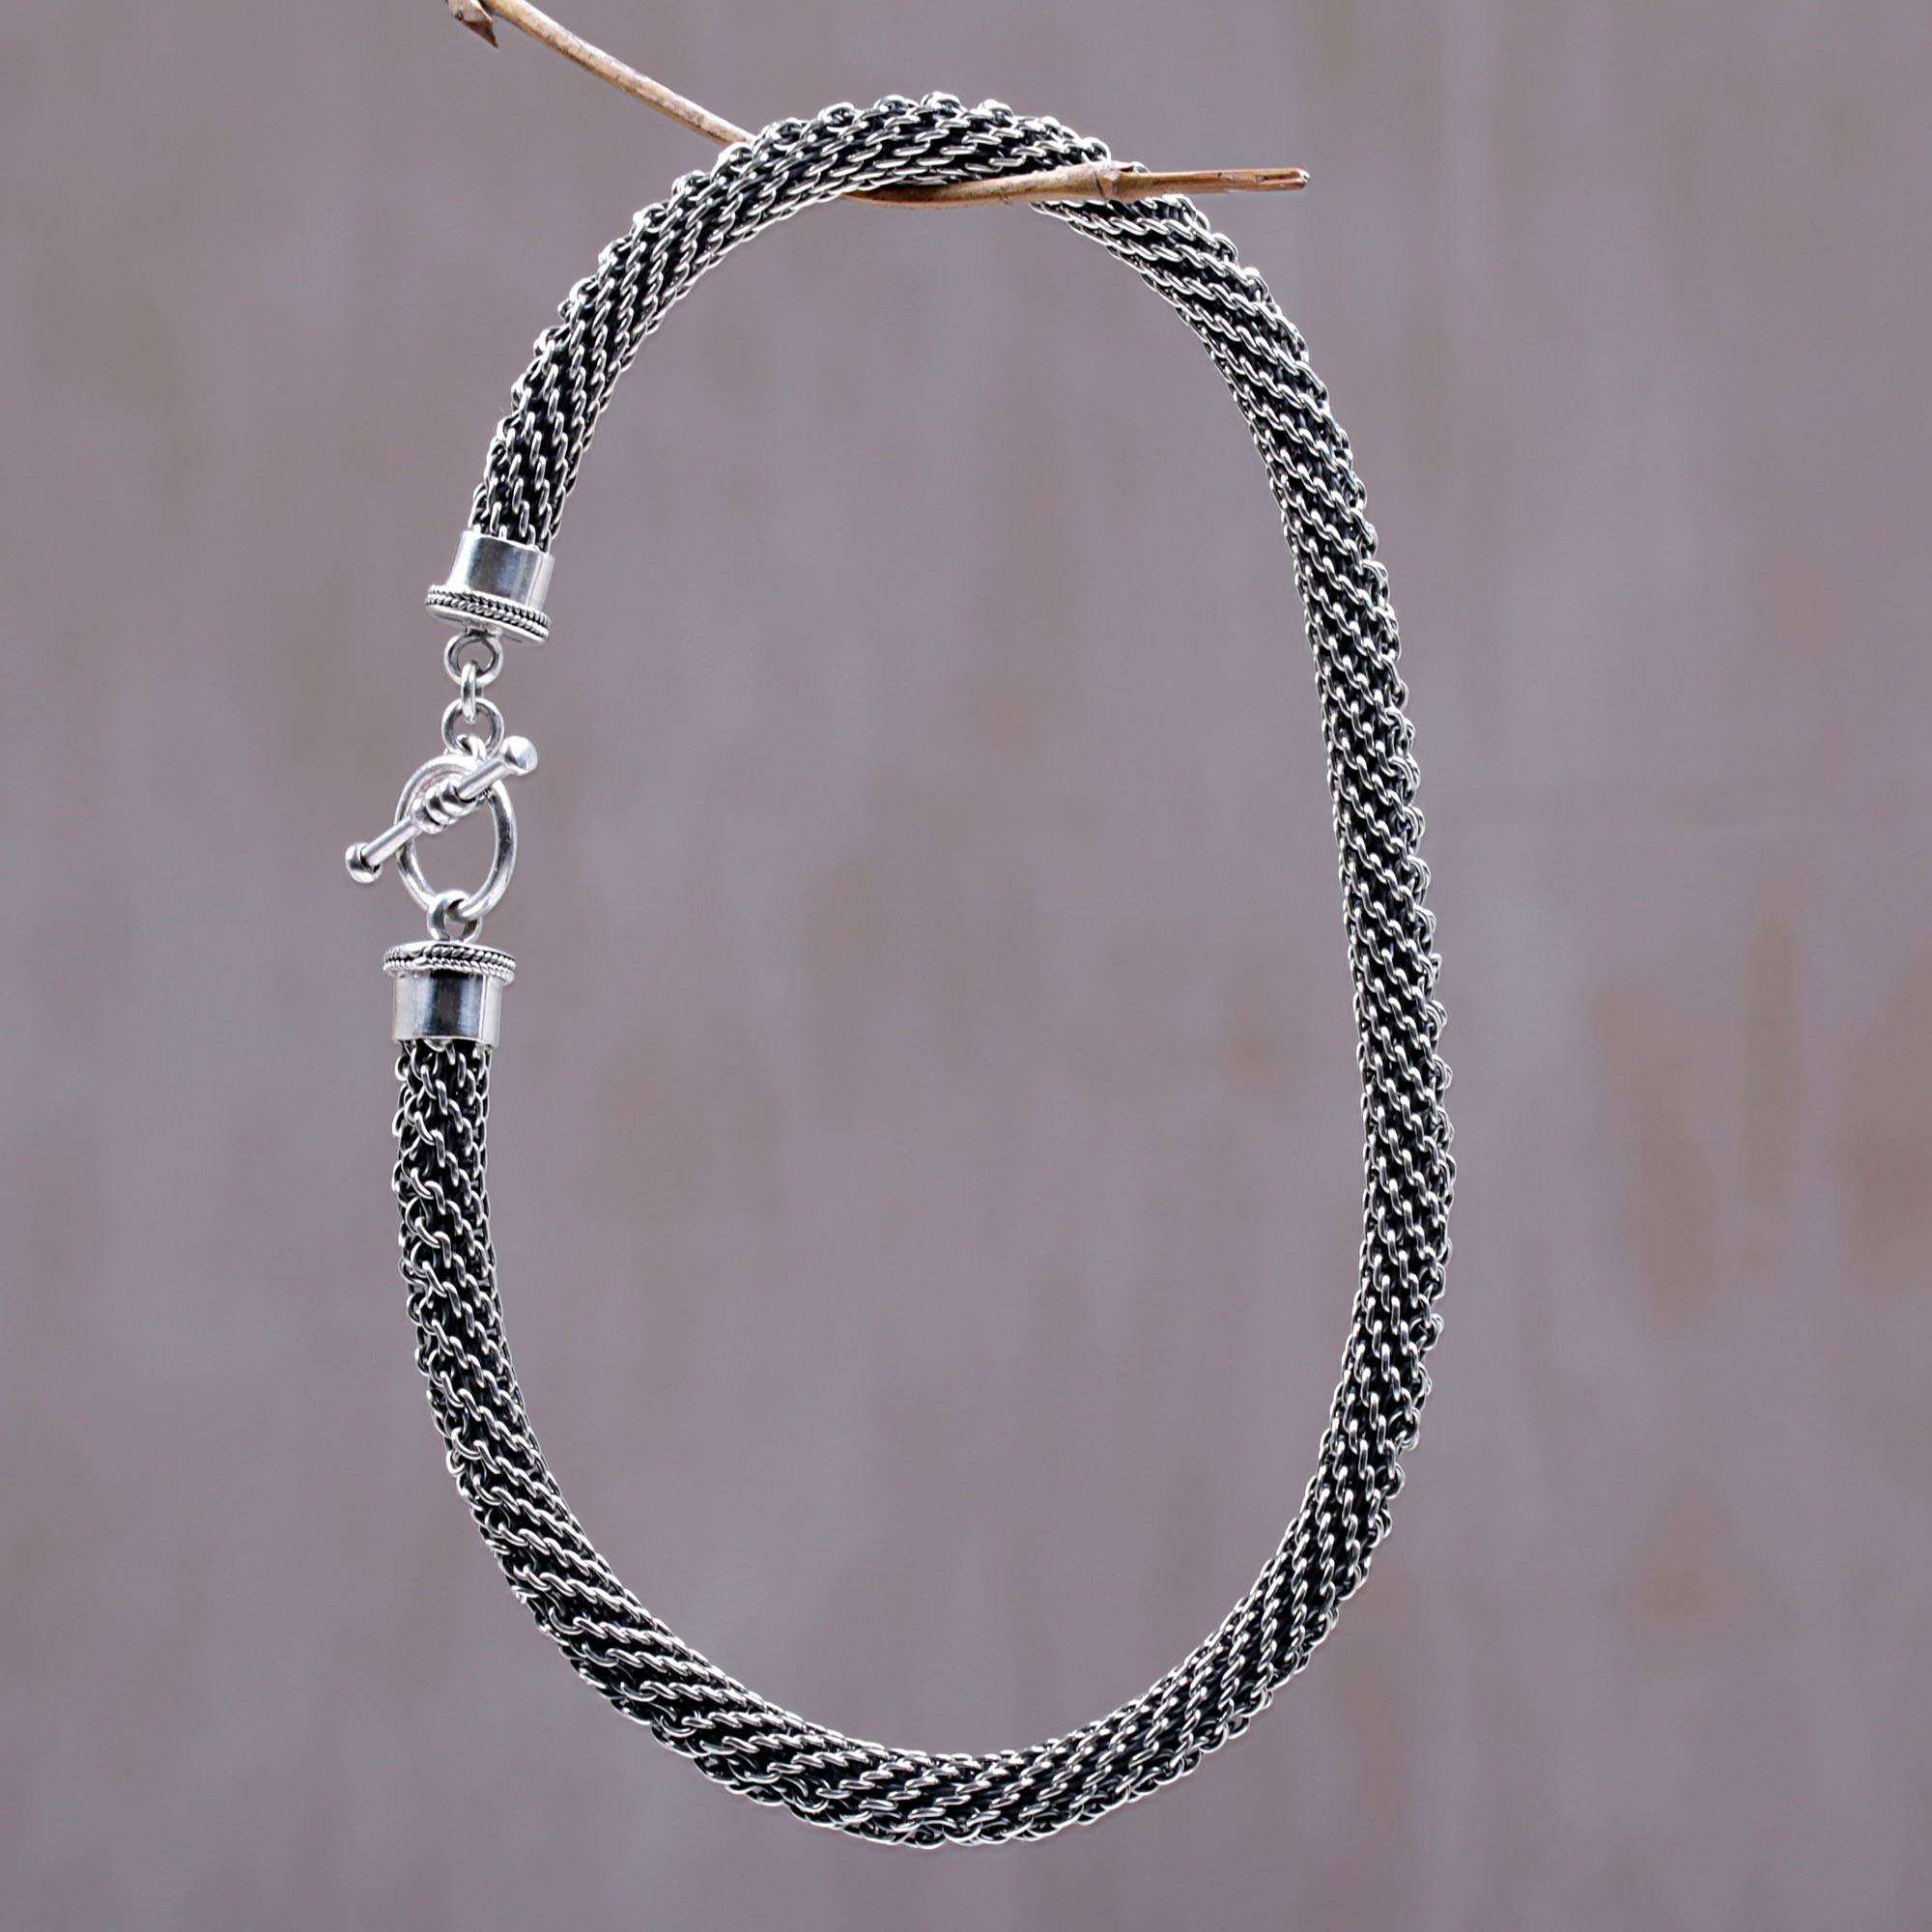 Sterling silver handmade chain necklace, 'Eternity' The Perfect Necklace